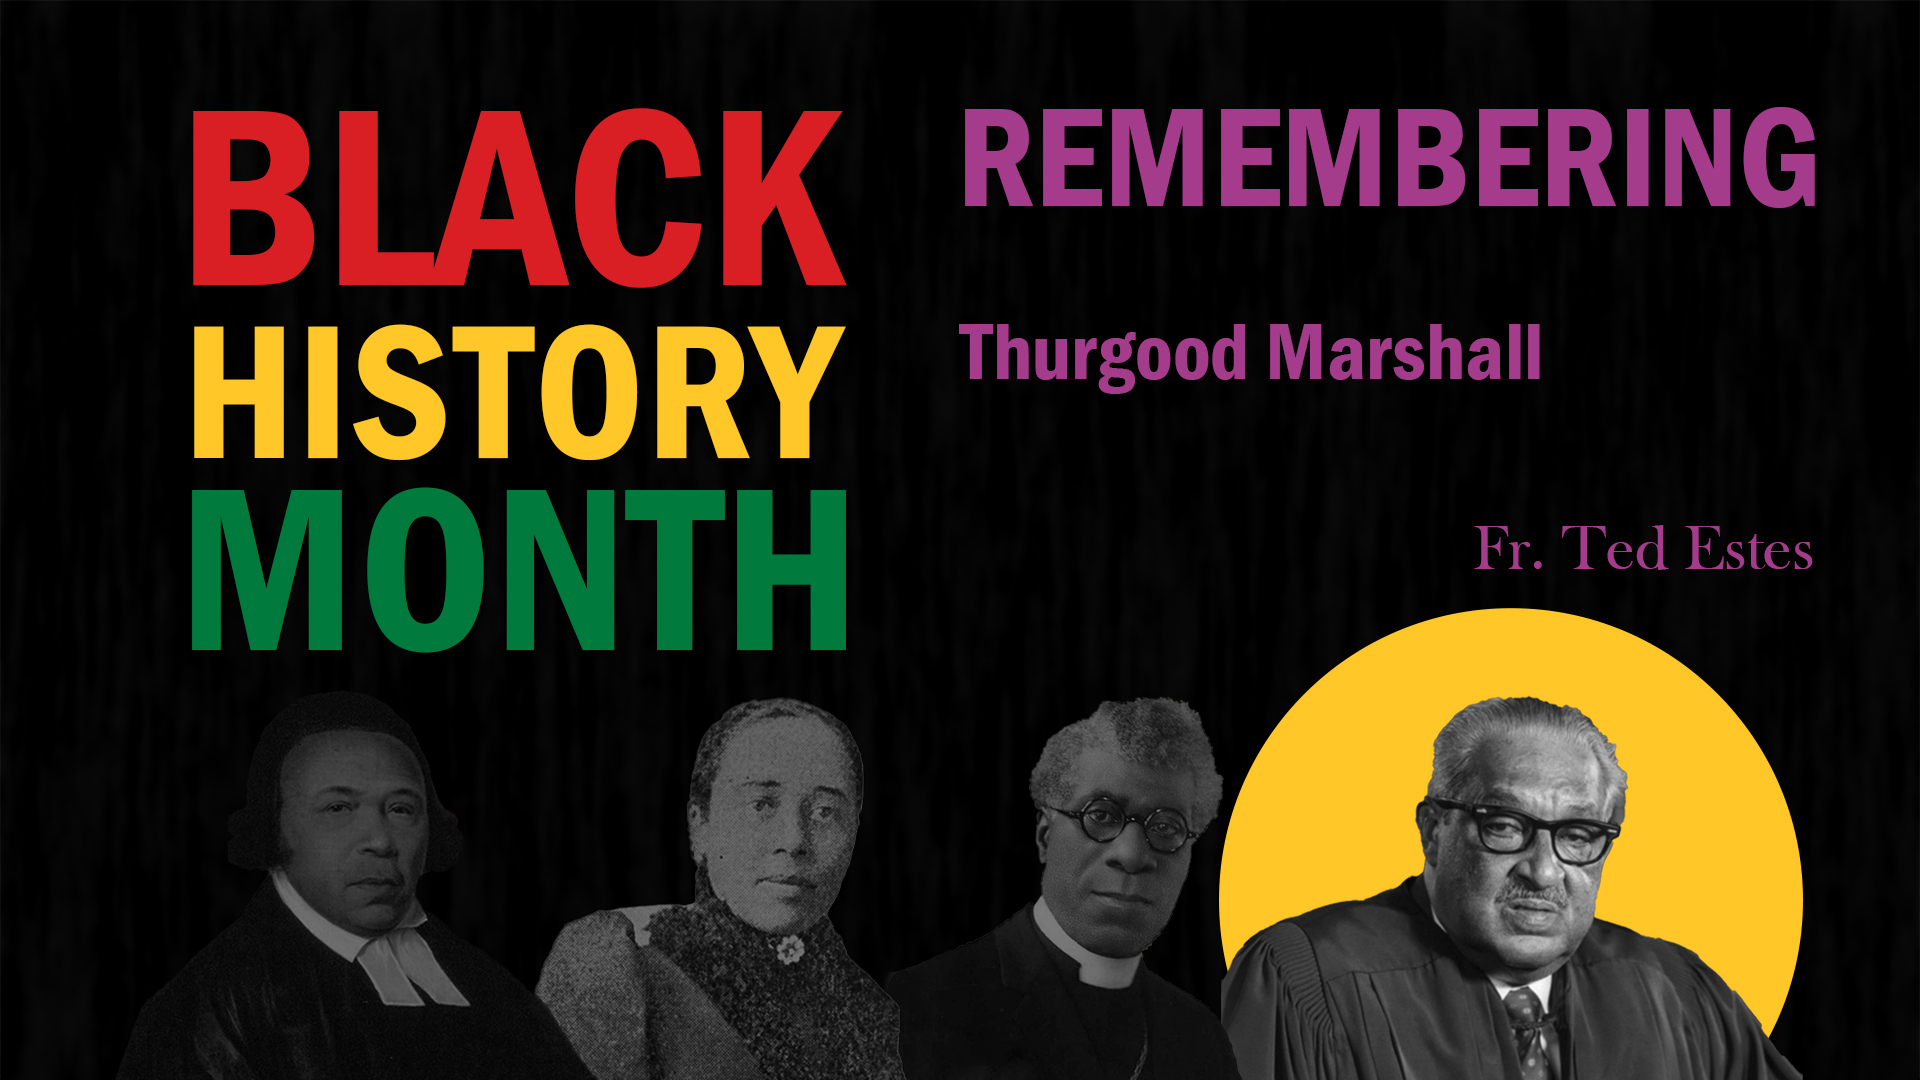 Black History Month. Remembering Thurgood Marshall